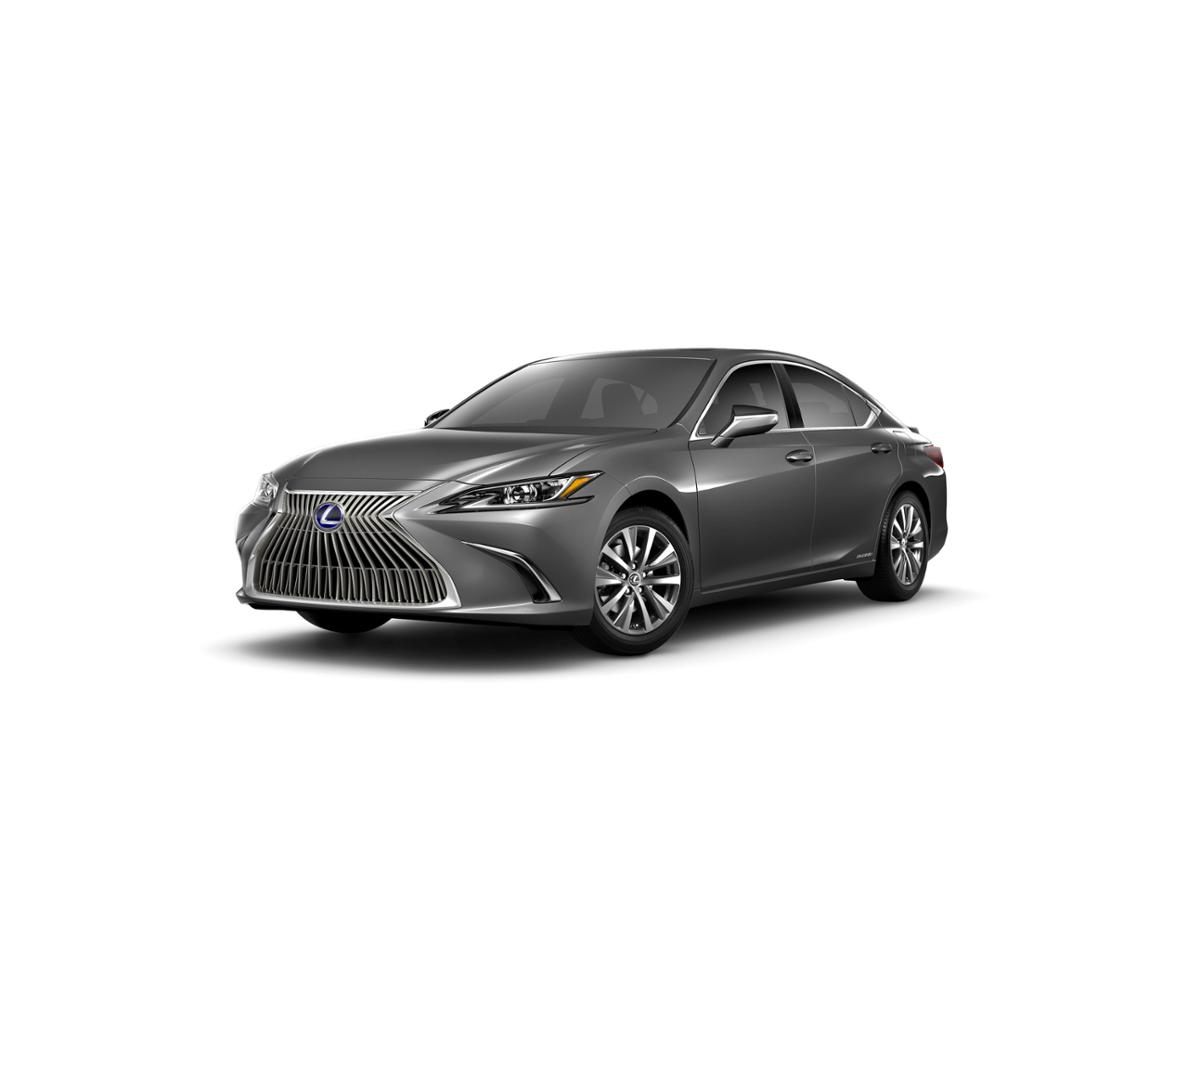 2019 Lexus ES 300h Vehicle Photo in Dallas, TX 75209